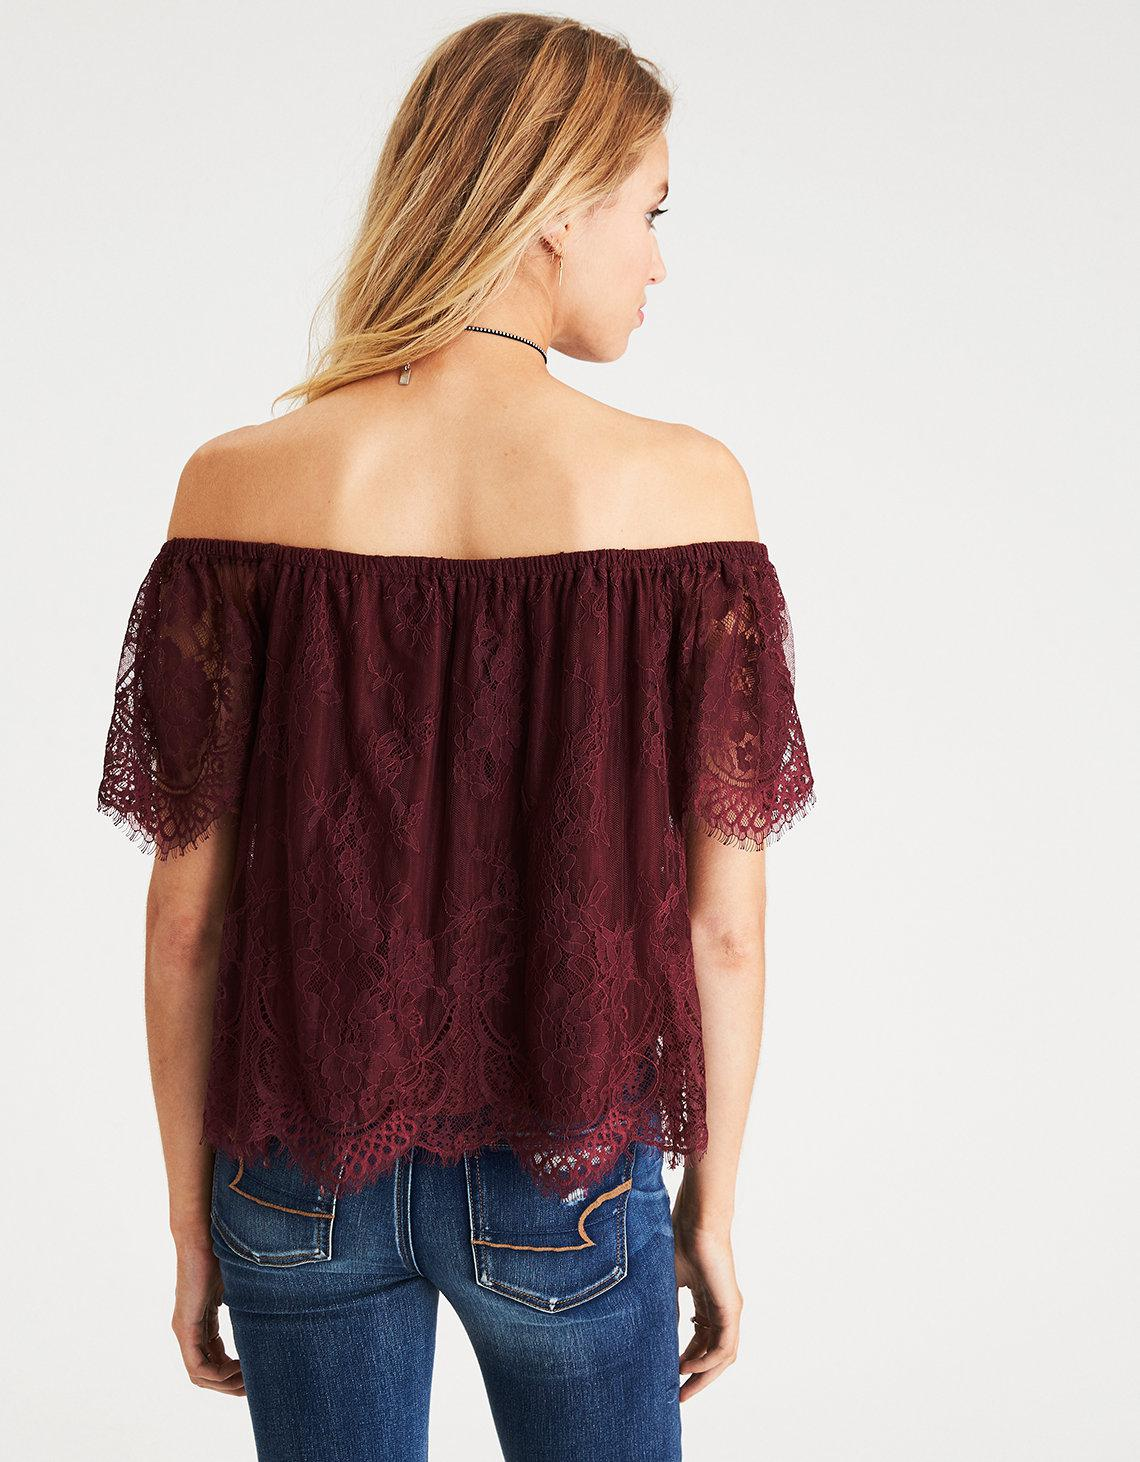 e0337207d55d8 Lyst - American Eagle Off-the-shoulder Eyelash Lace Top in Red